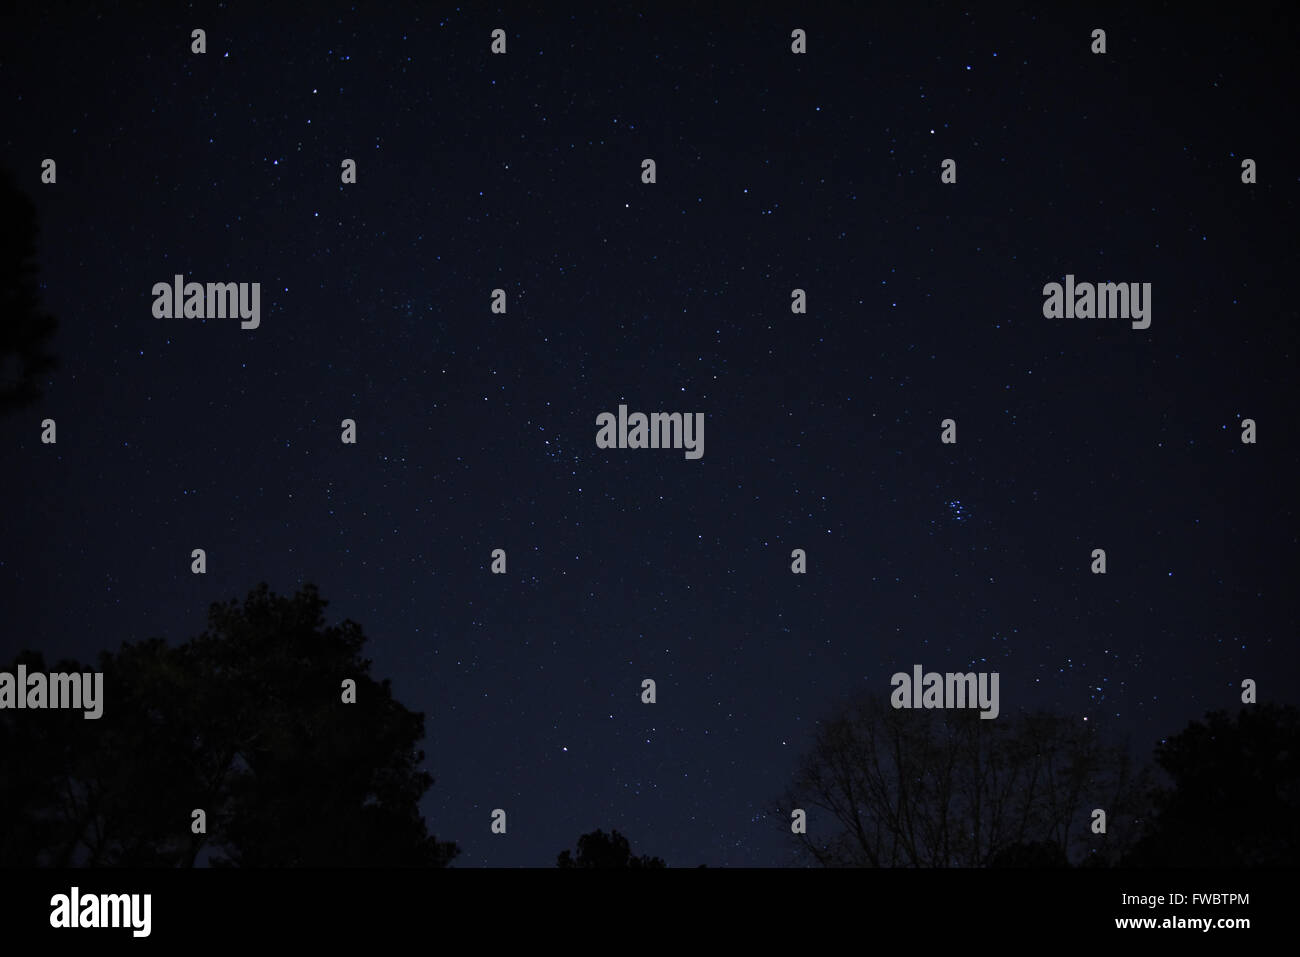 Northeastern late fall early evening sky with stars and constellations clearly visible. - Stock Image